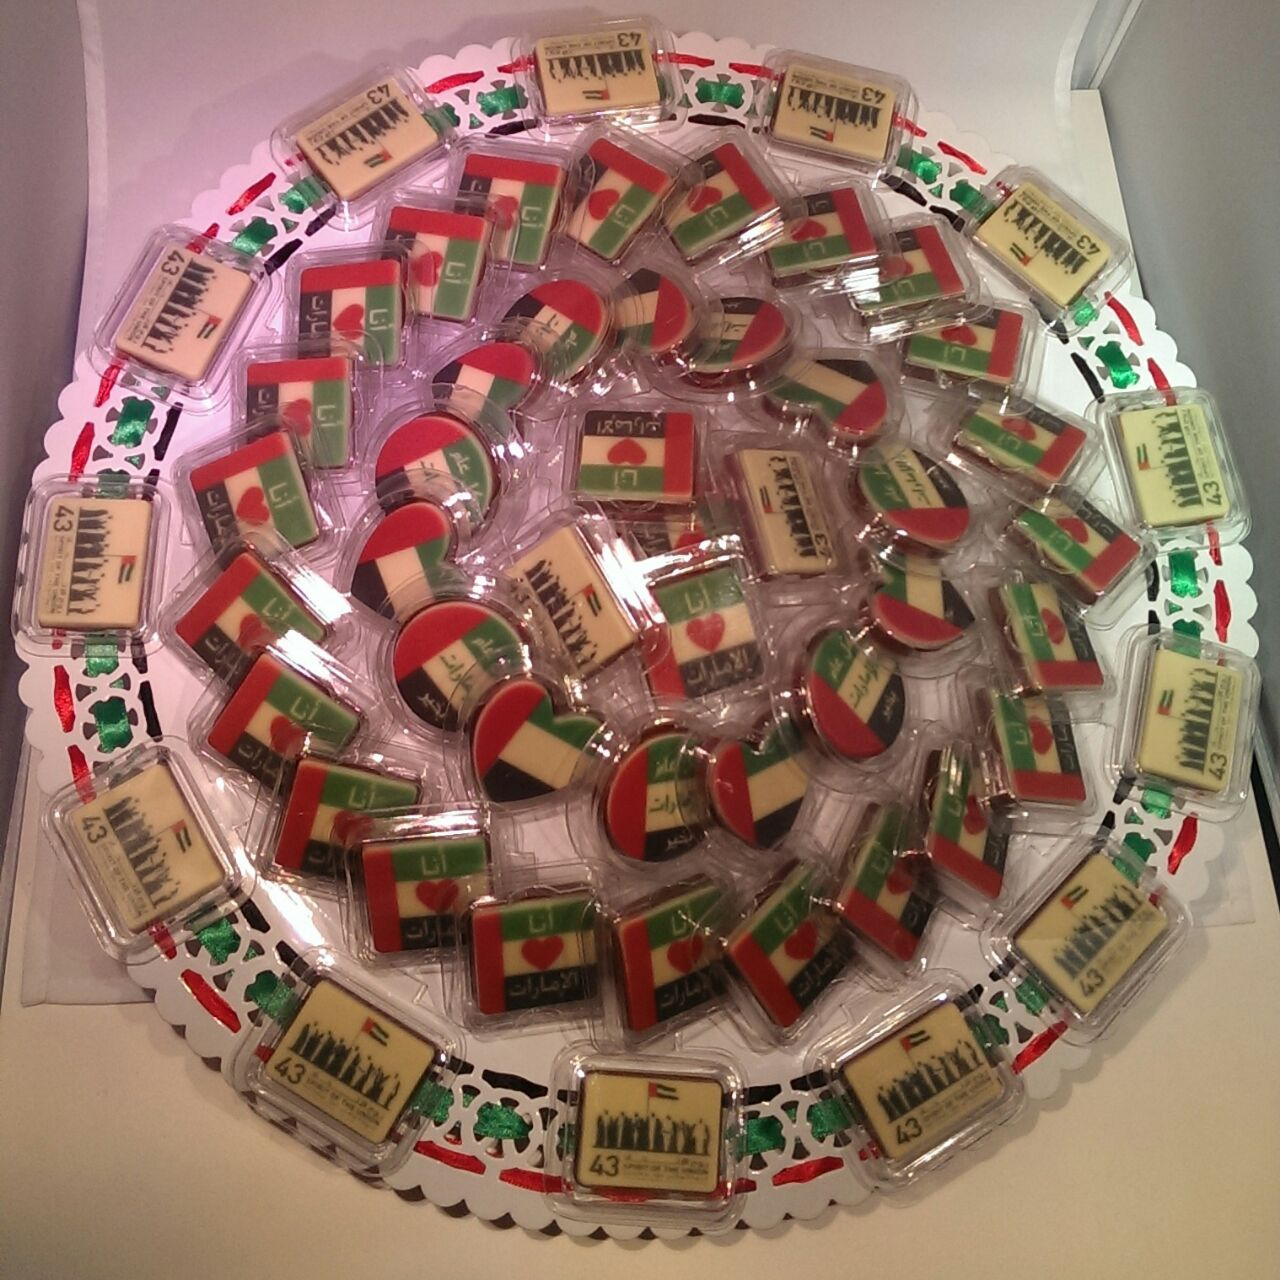 A Tray Of Chocolates Printed With Different Designs For Uae National Day On 2nd December Uae Chocolate Uaeflag Uaefood Bombones